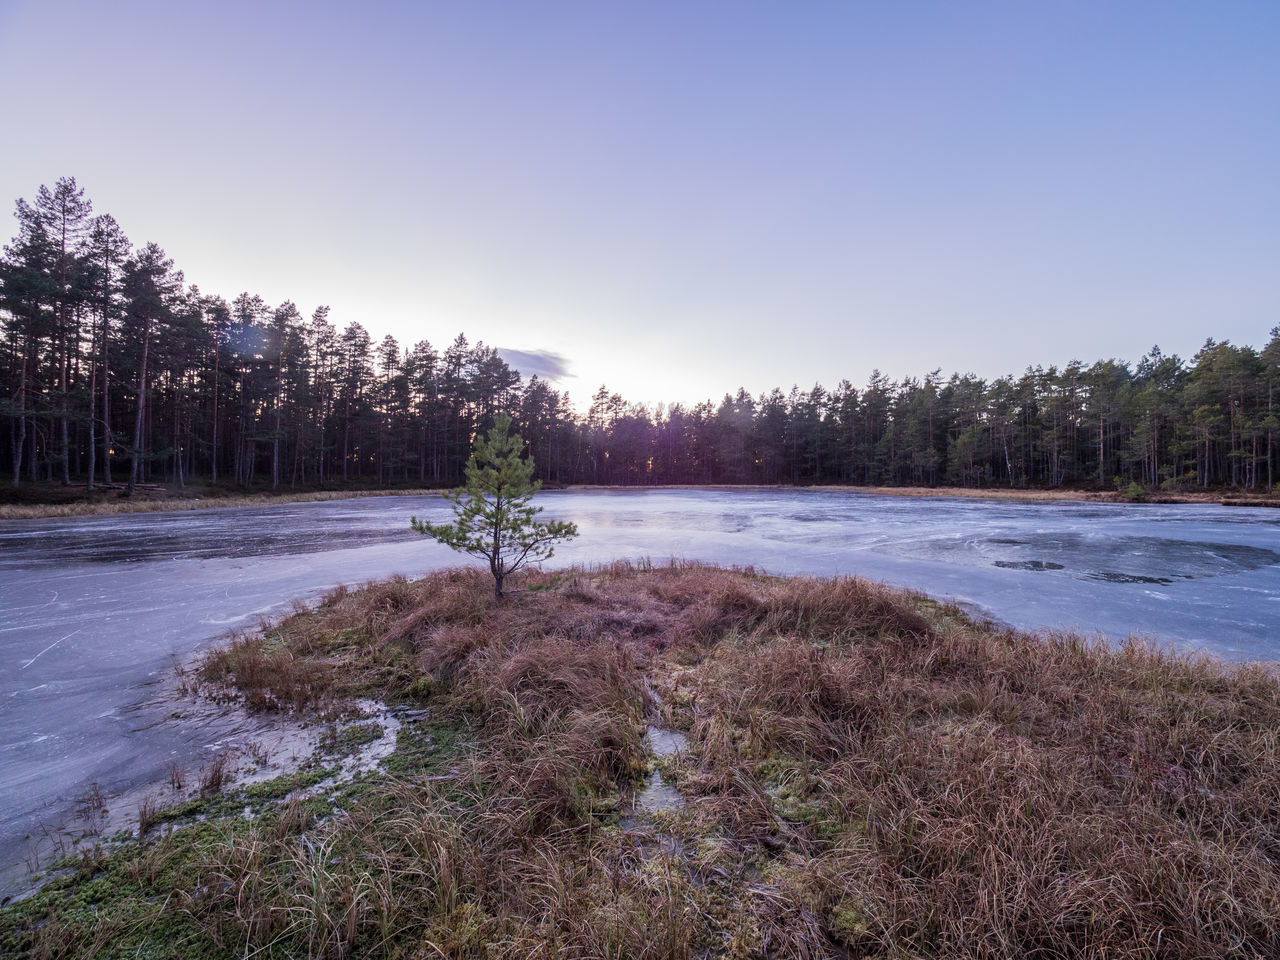 The frosen lake Måsatjernet at Nesodden, Norway Forest Forrest Lake Frosen Lake Frost Frosty Days Frozen Lake View Lakeshore Nature Nature No People Norway Outdoors Scandinavia Small Tree Small Tree On The Beach Tree Wood